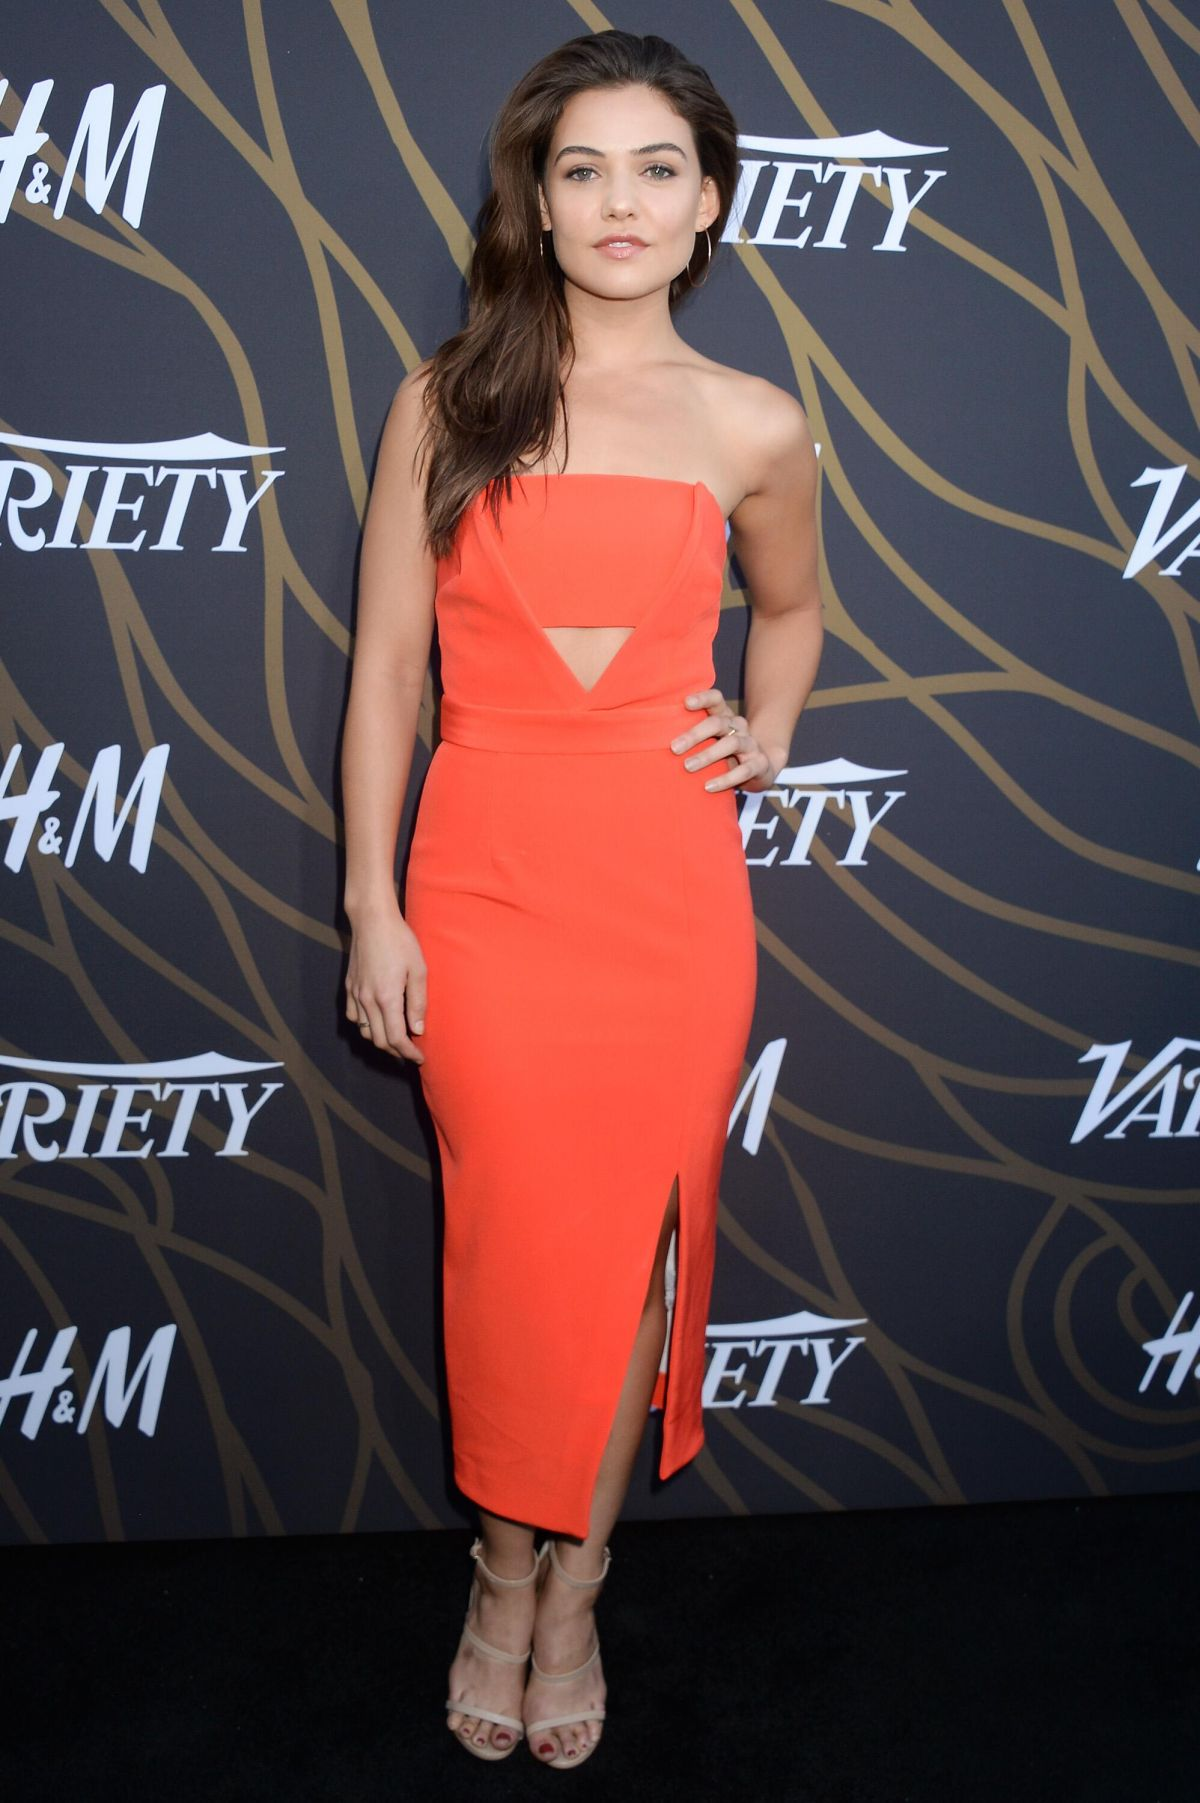 Danielle Campbell At Variety's Power of young Hollywood in LA danielle-campbell-at-variety-s-power-of-young-hollywood-in-la-_5